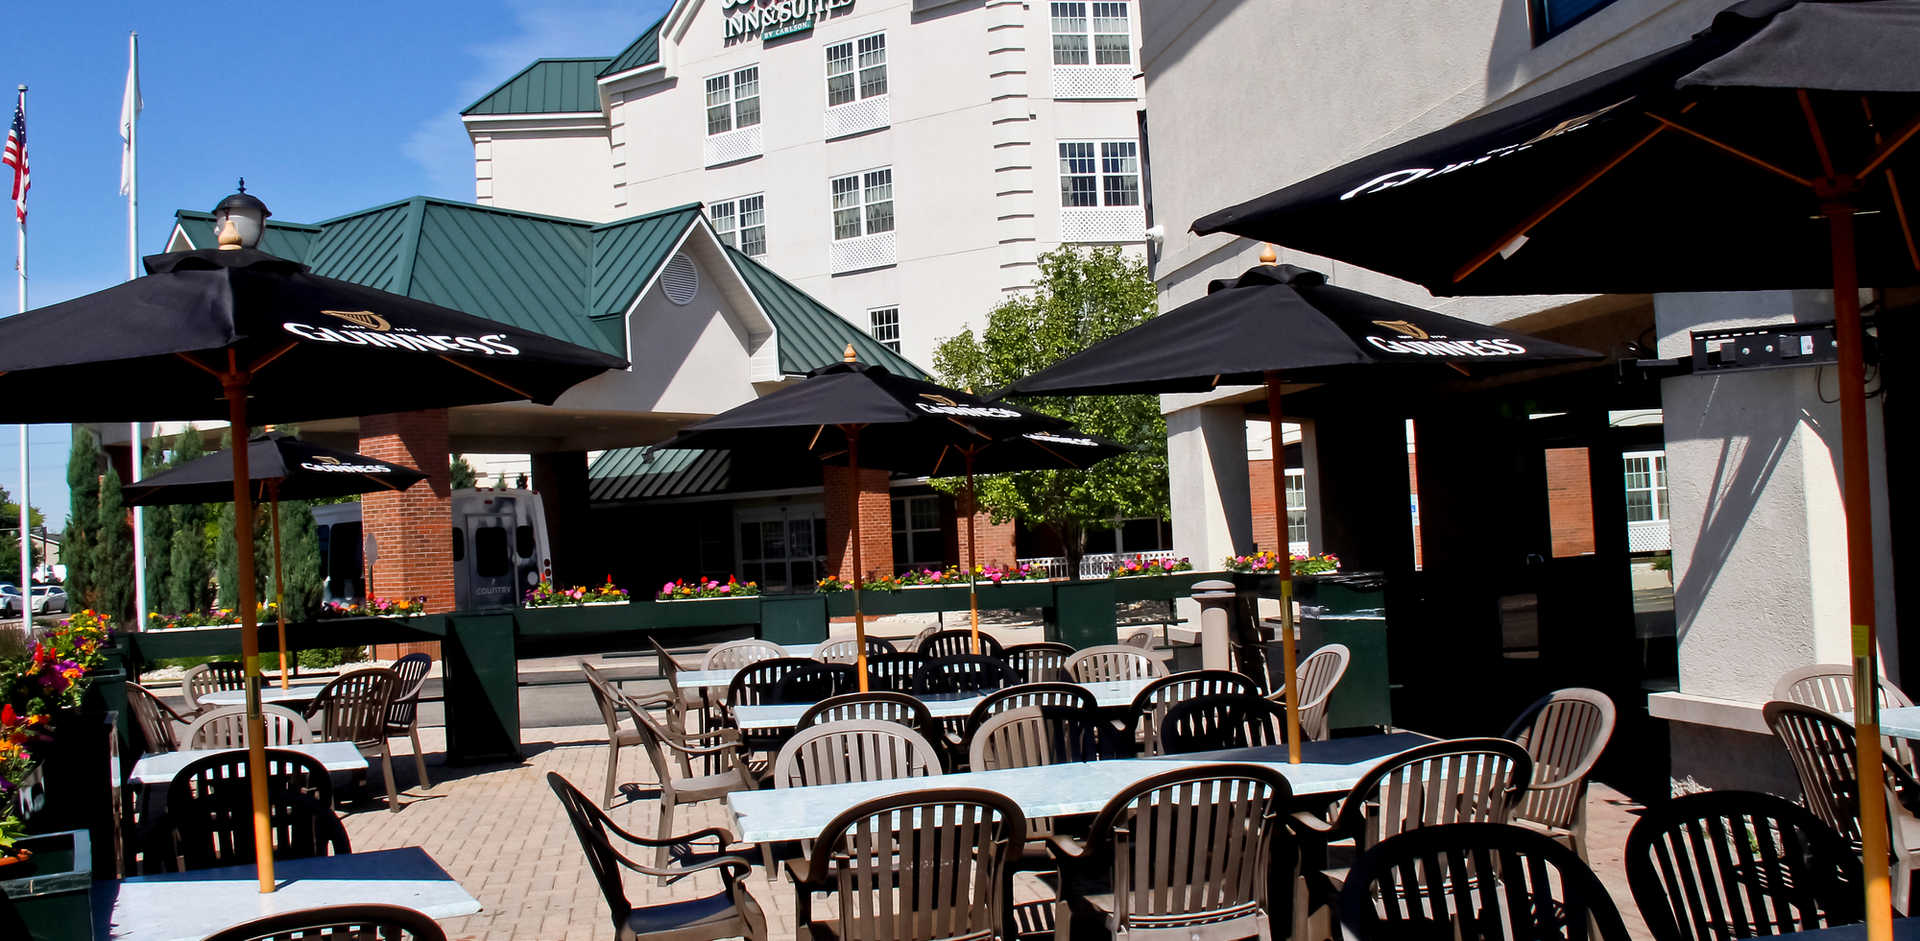 Real Time Sports Bar and Grill Patio view 3